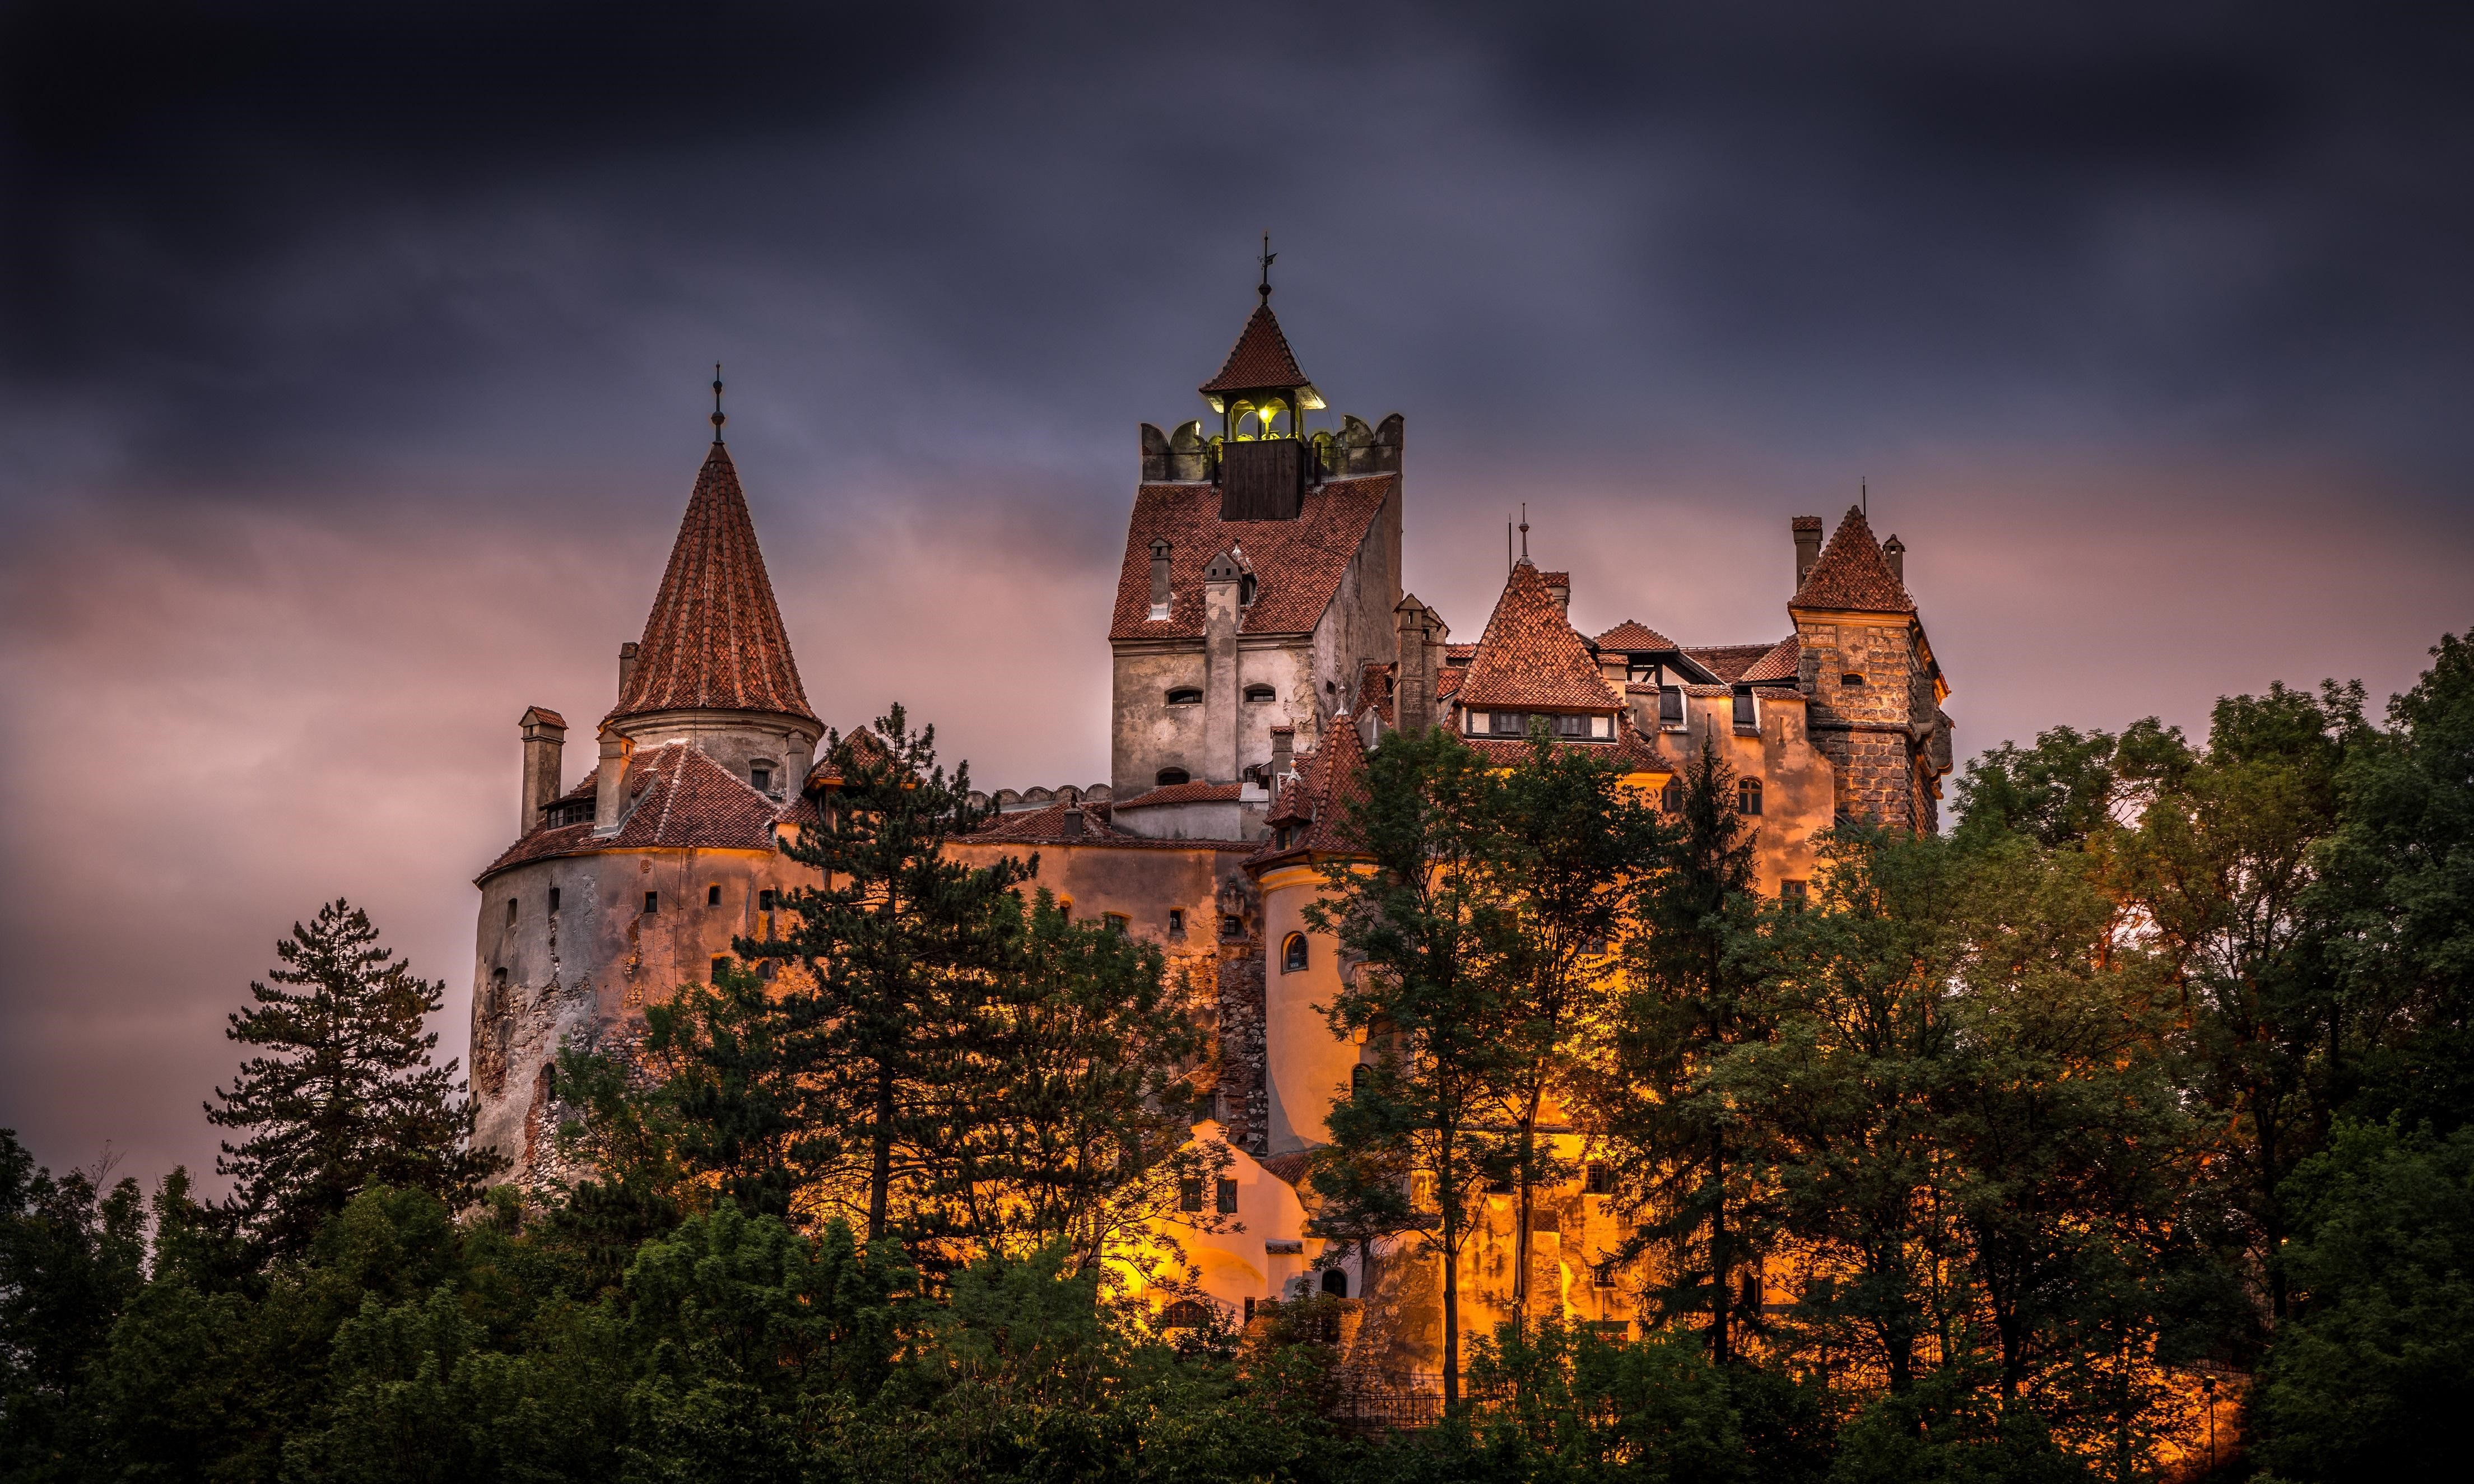 Bran Castle at Night in Romania Tourist Place Wallpapers | HD Wallpapers